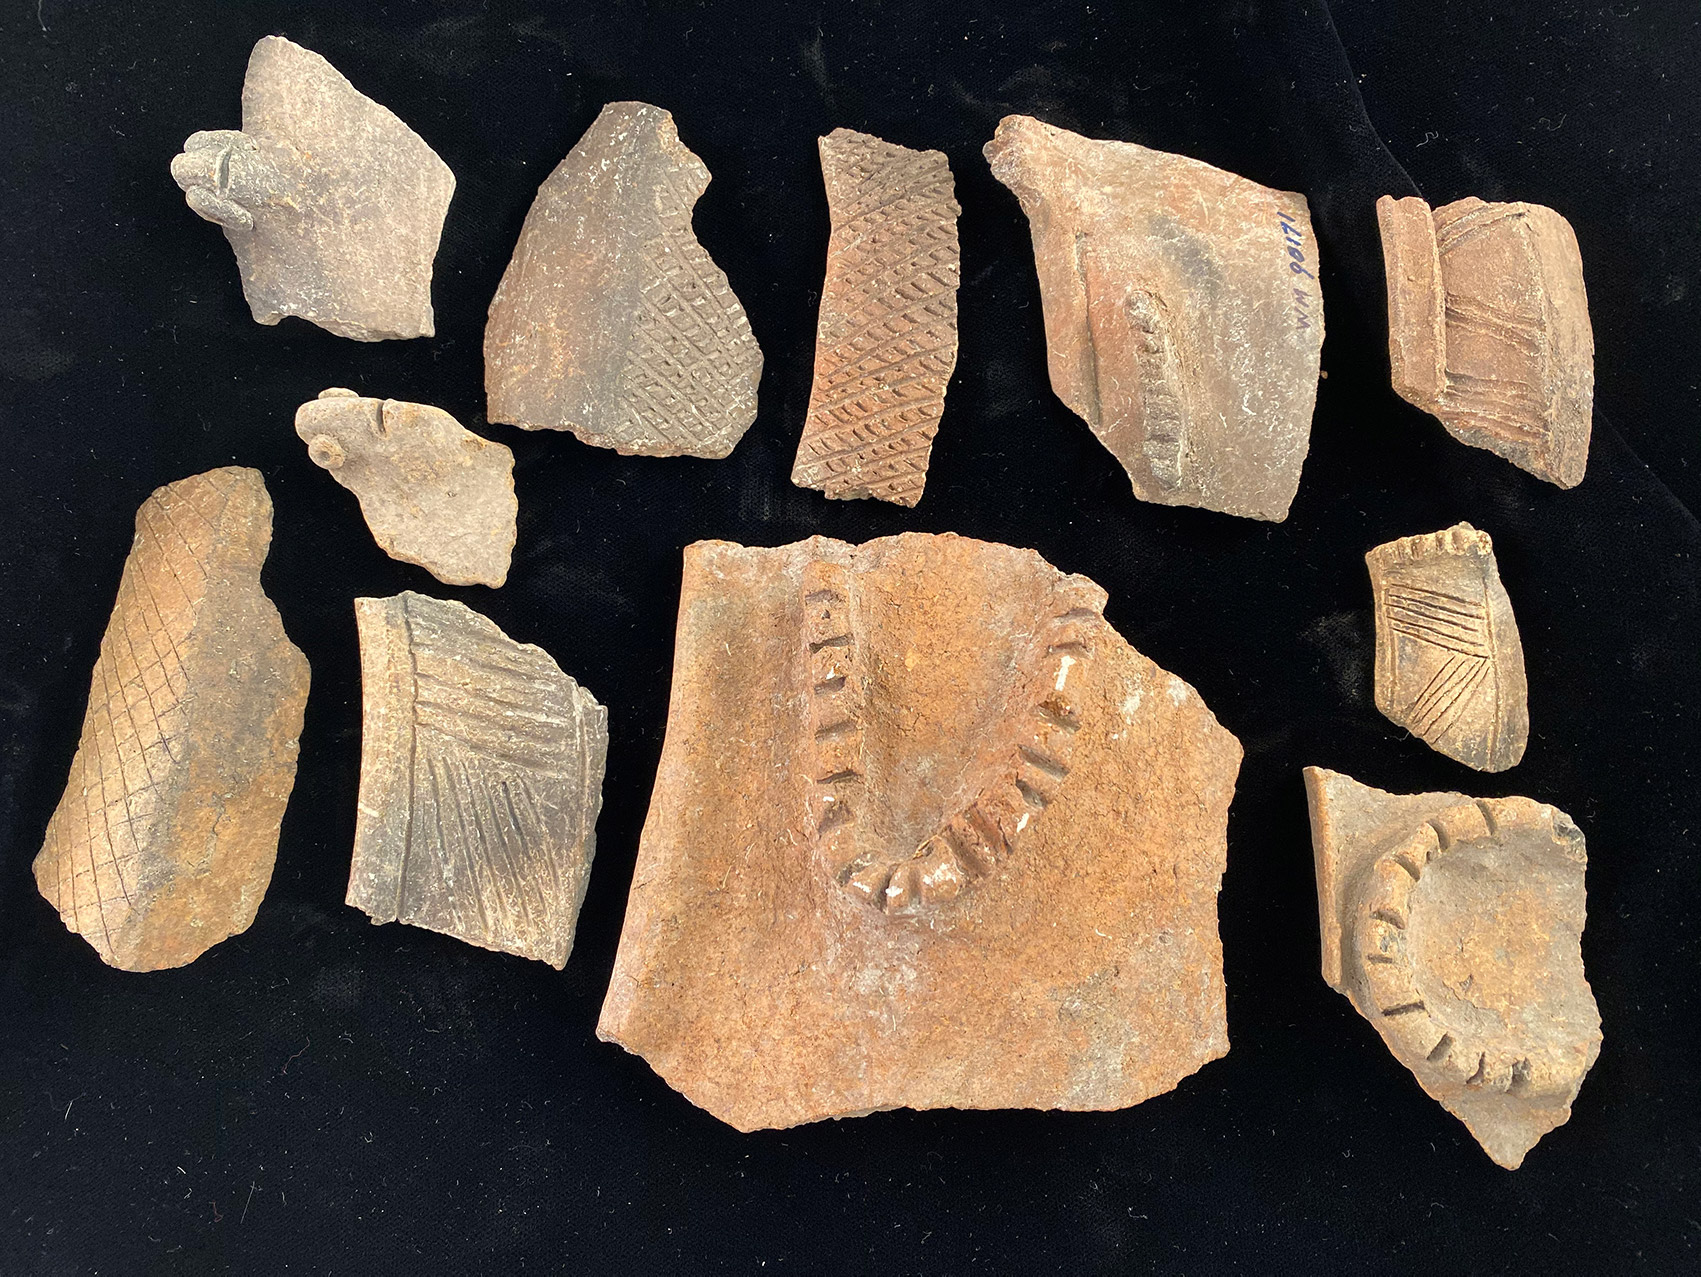 Broken pieces of reddish-orange pottery with different etchings and markings on them sit on a black background